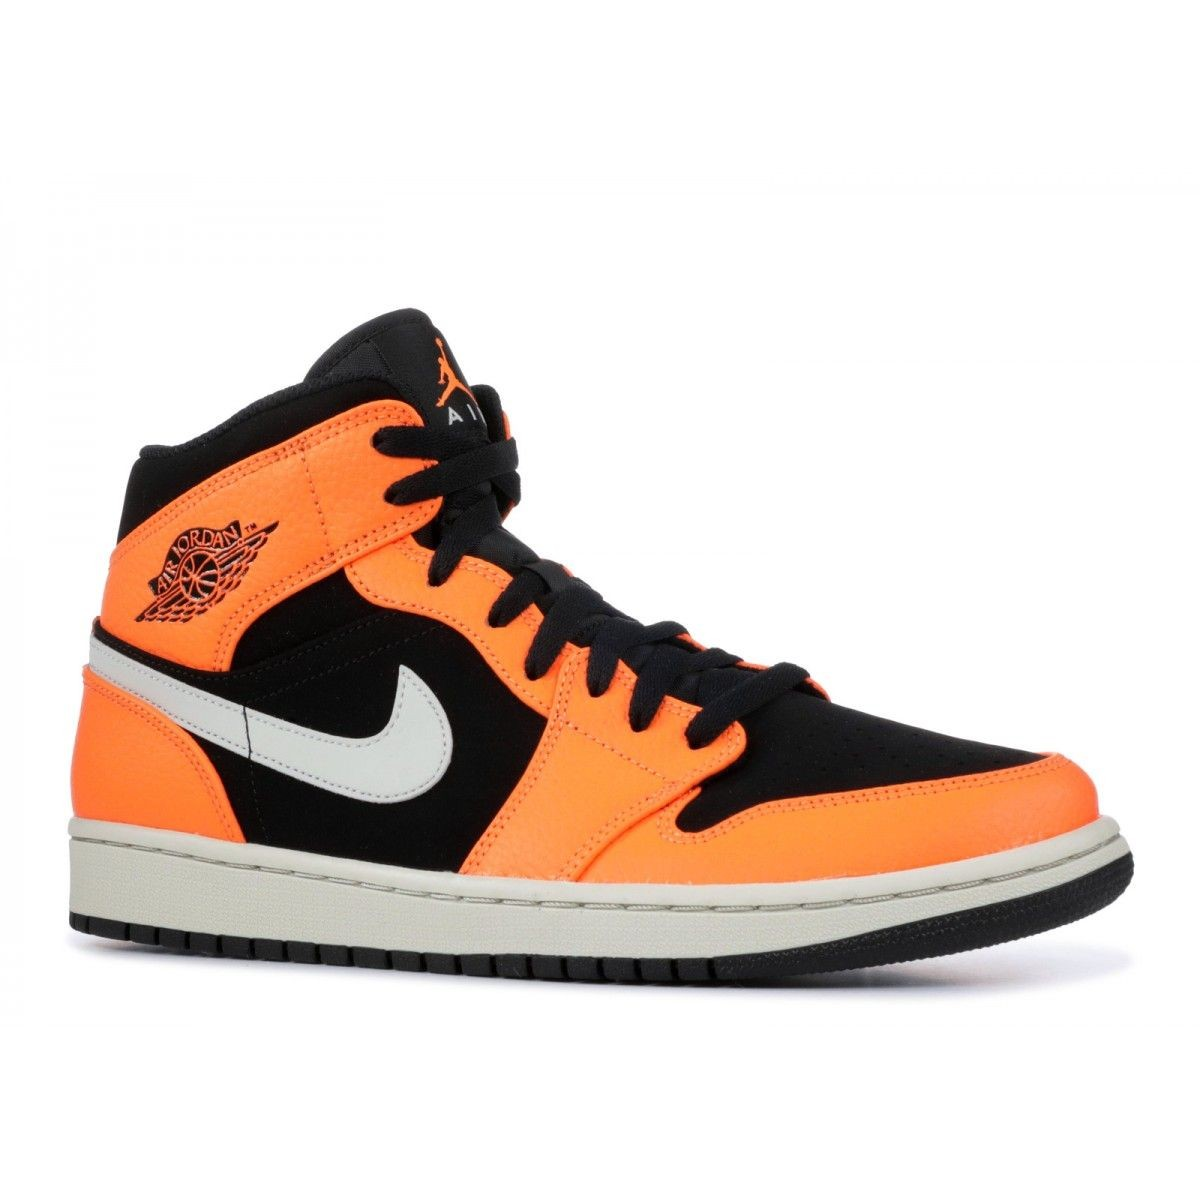 jordan baskets air jordan 1 mid homme